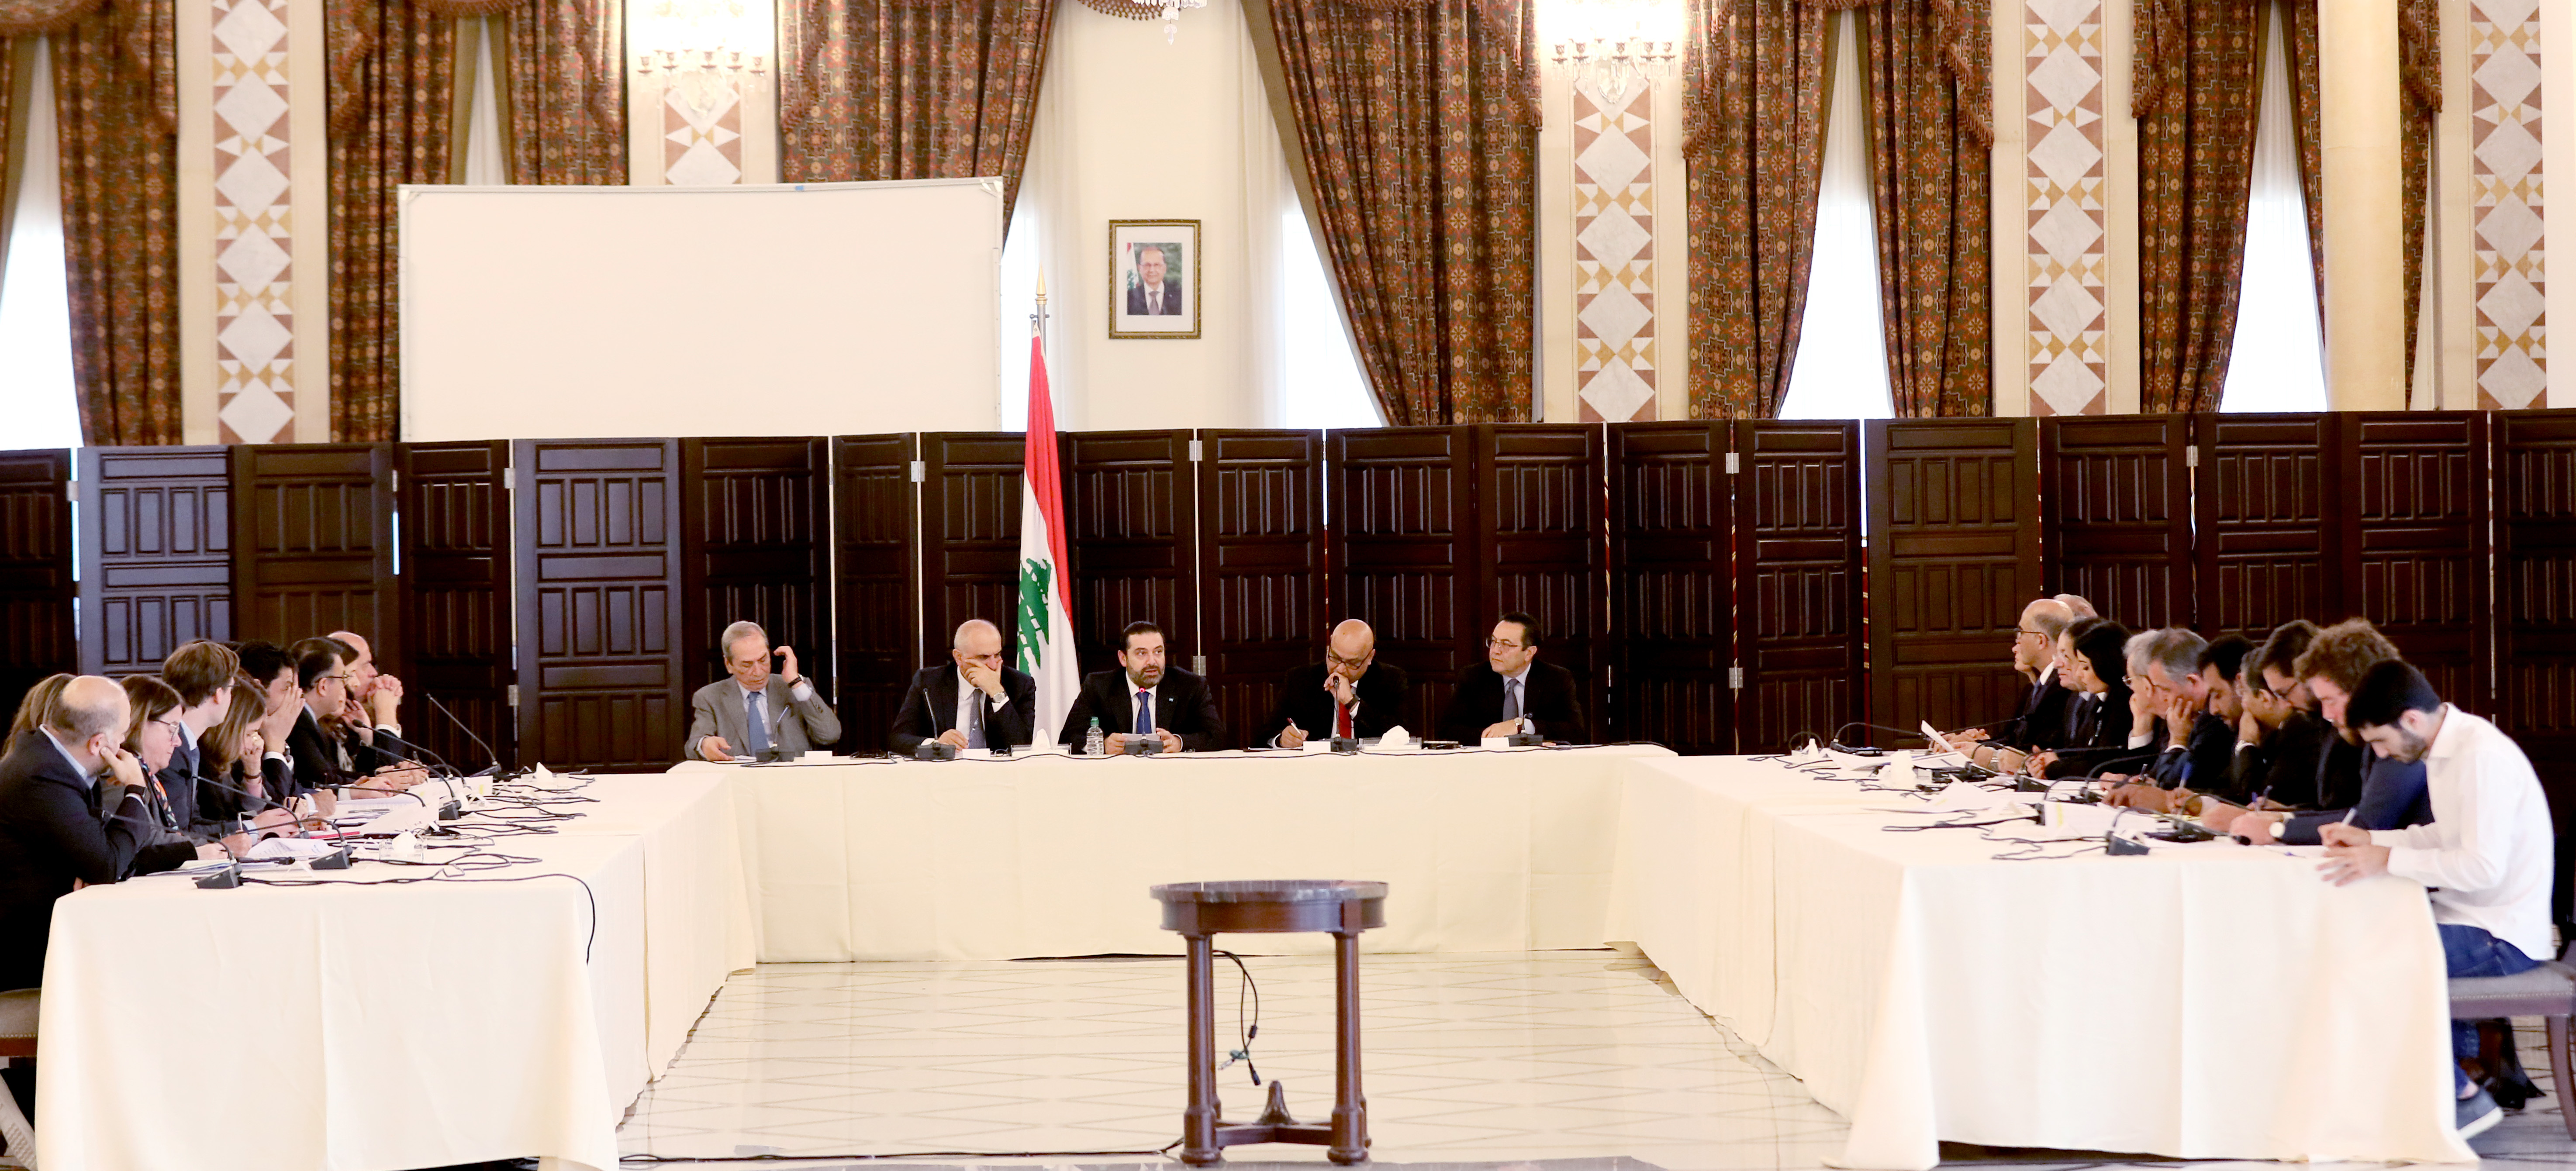 Workshop for Pr Minister Saad Hariri at Grand Serail  3